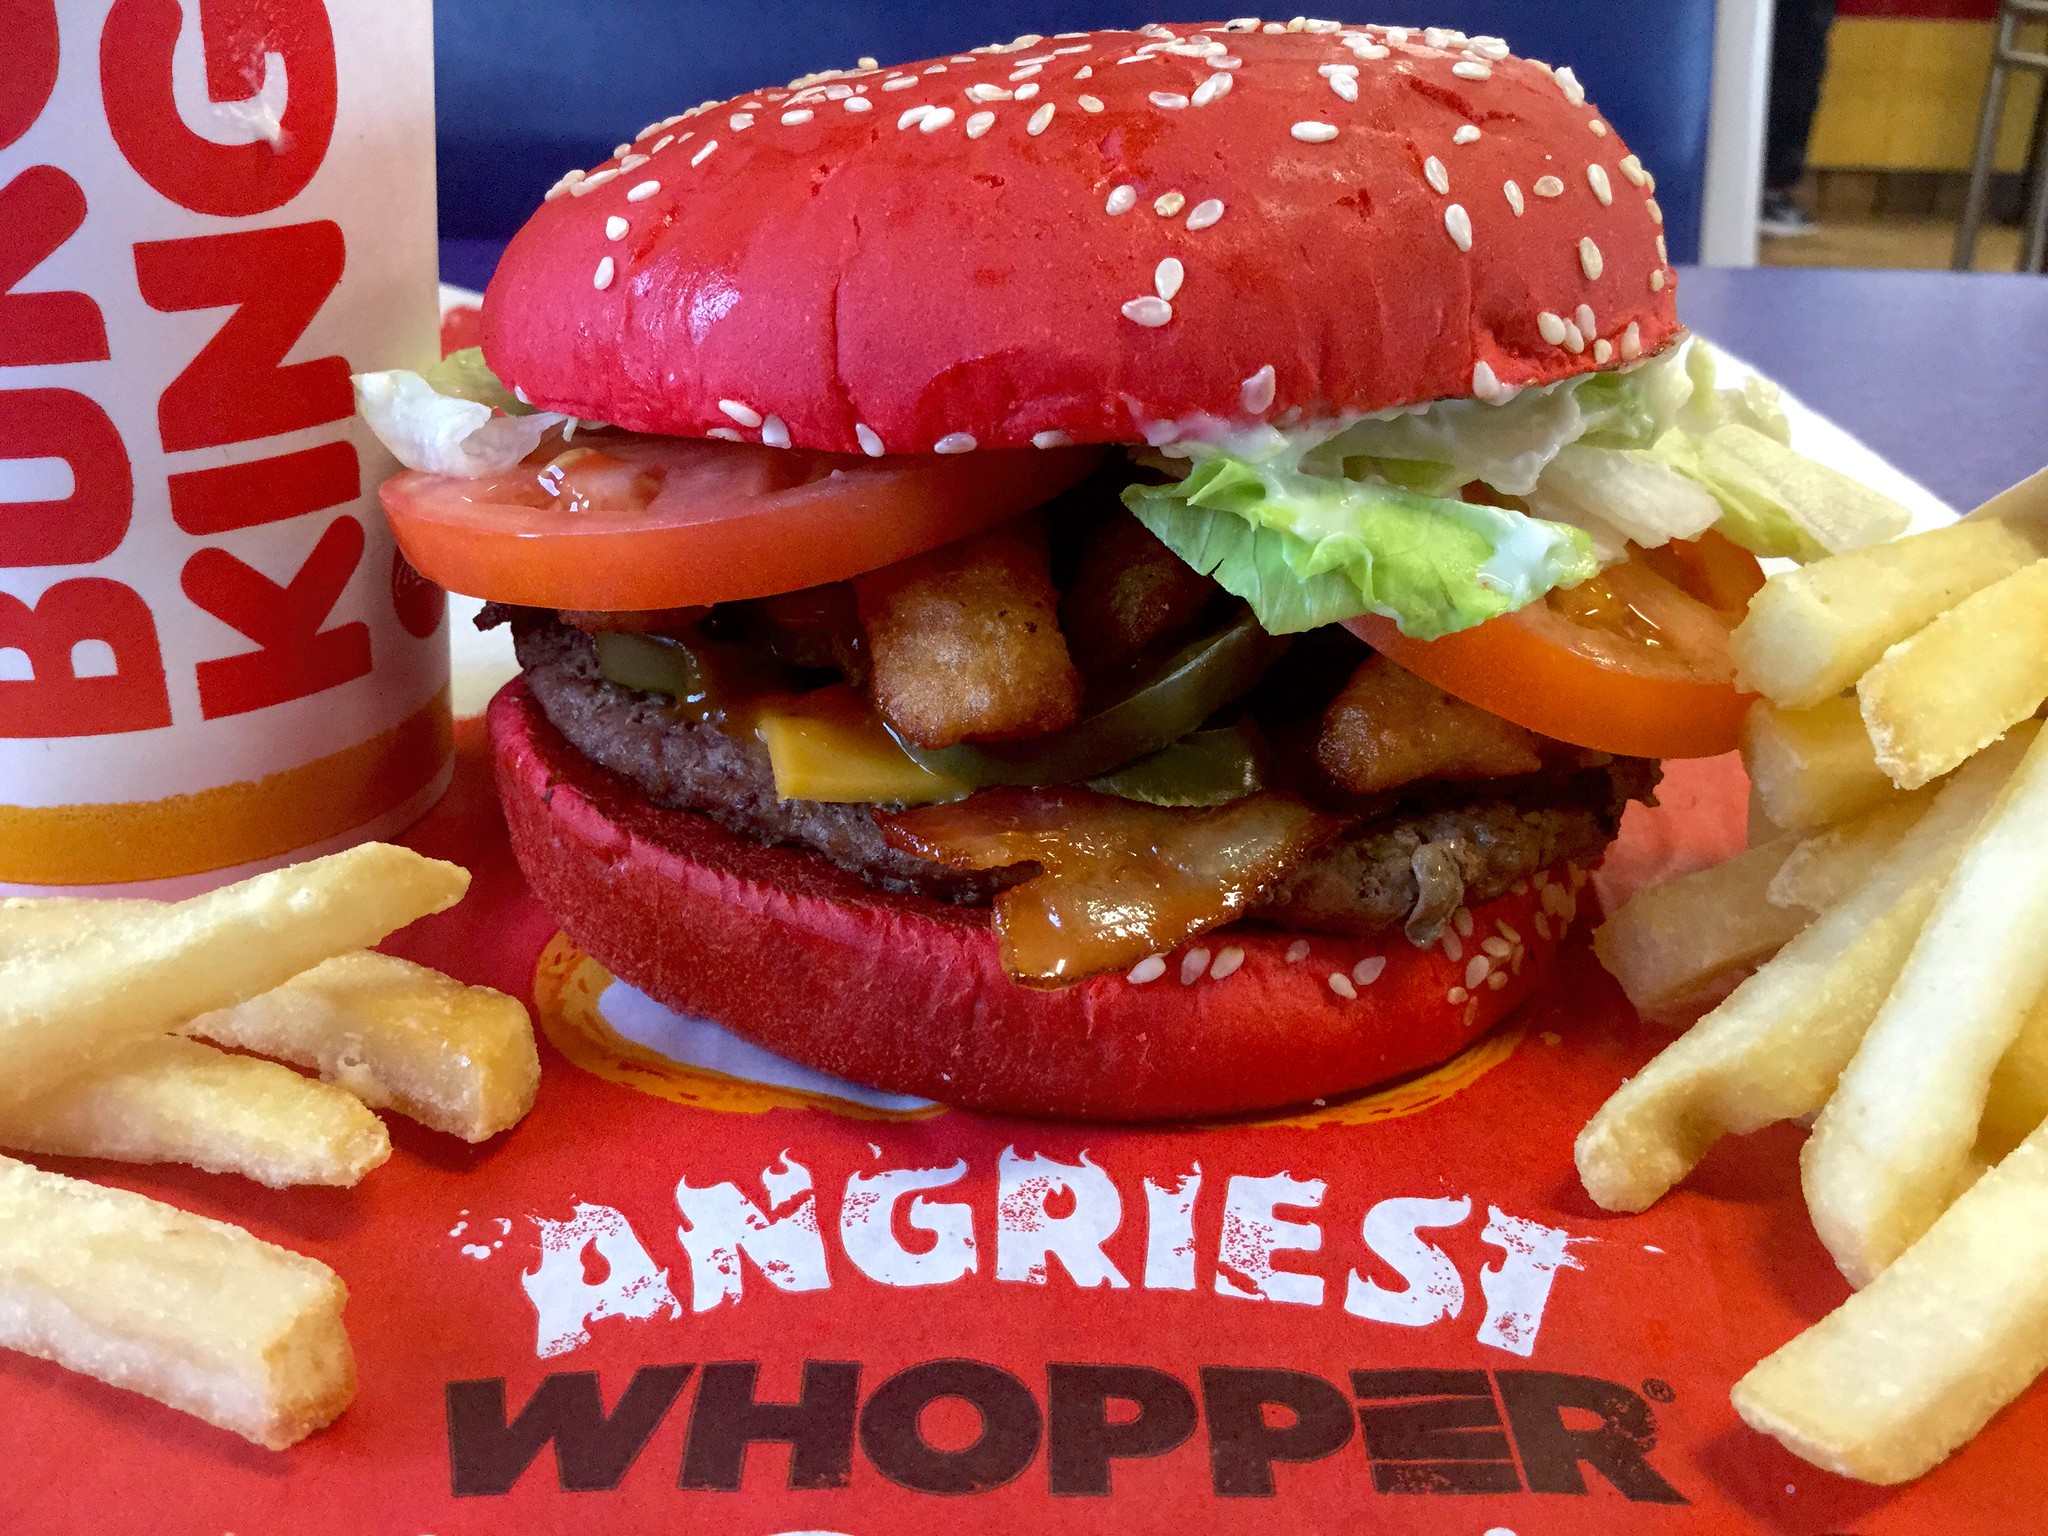 Burger King Angriest Whopper with fries